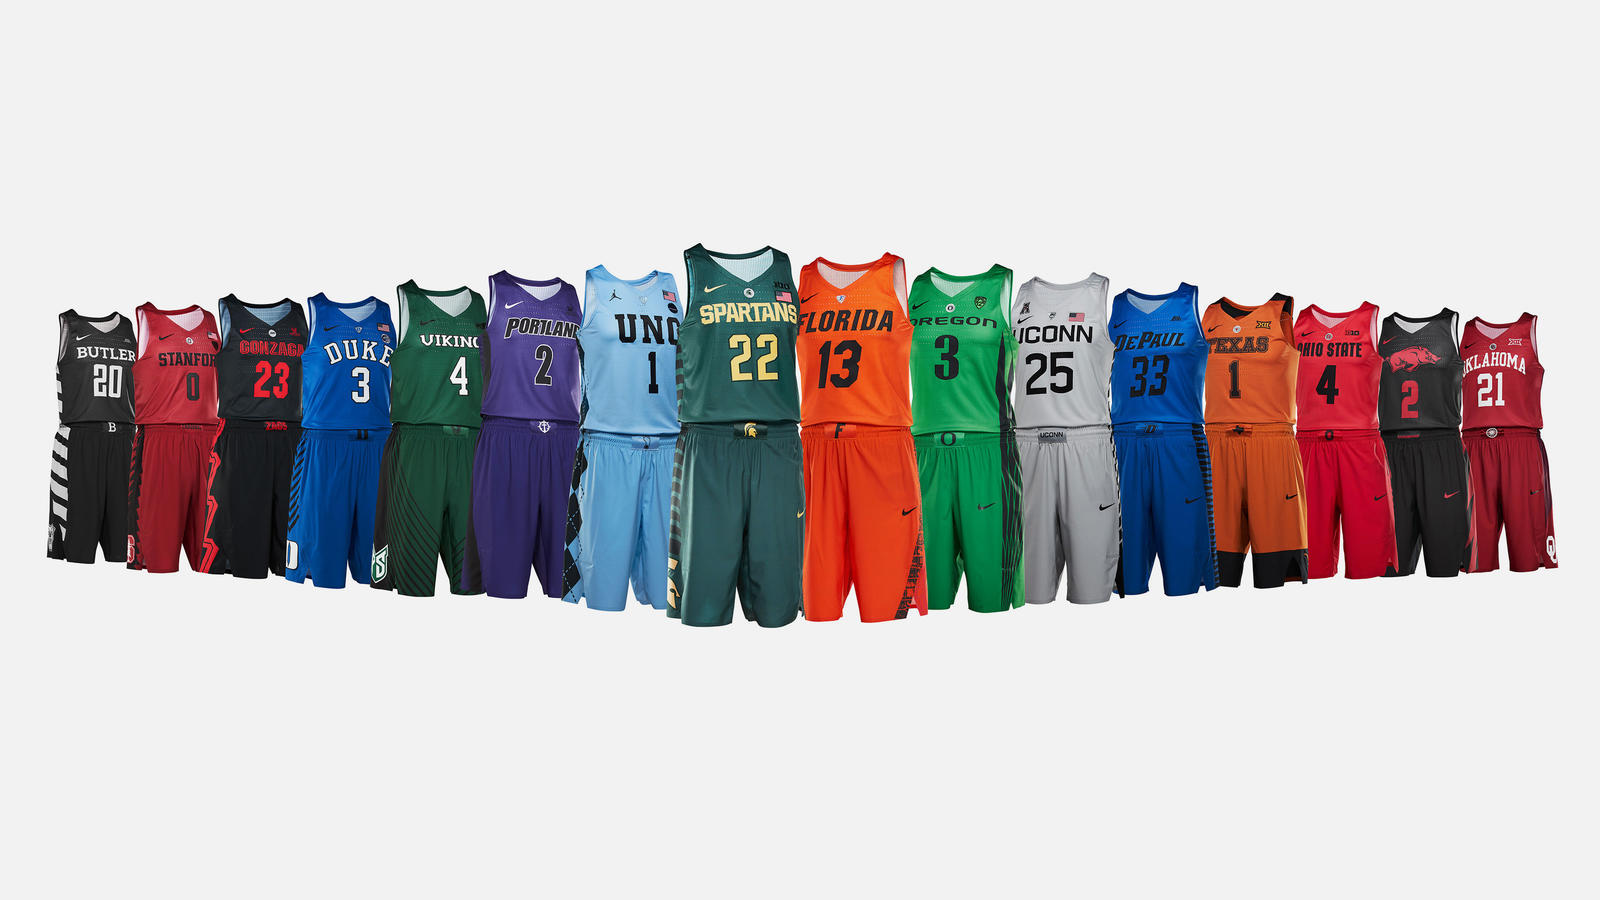 new style 9225d 8e9b0 ... PK80 Nike collection and stay All 16 teams participating in the event  have apparel contracts with Nike.